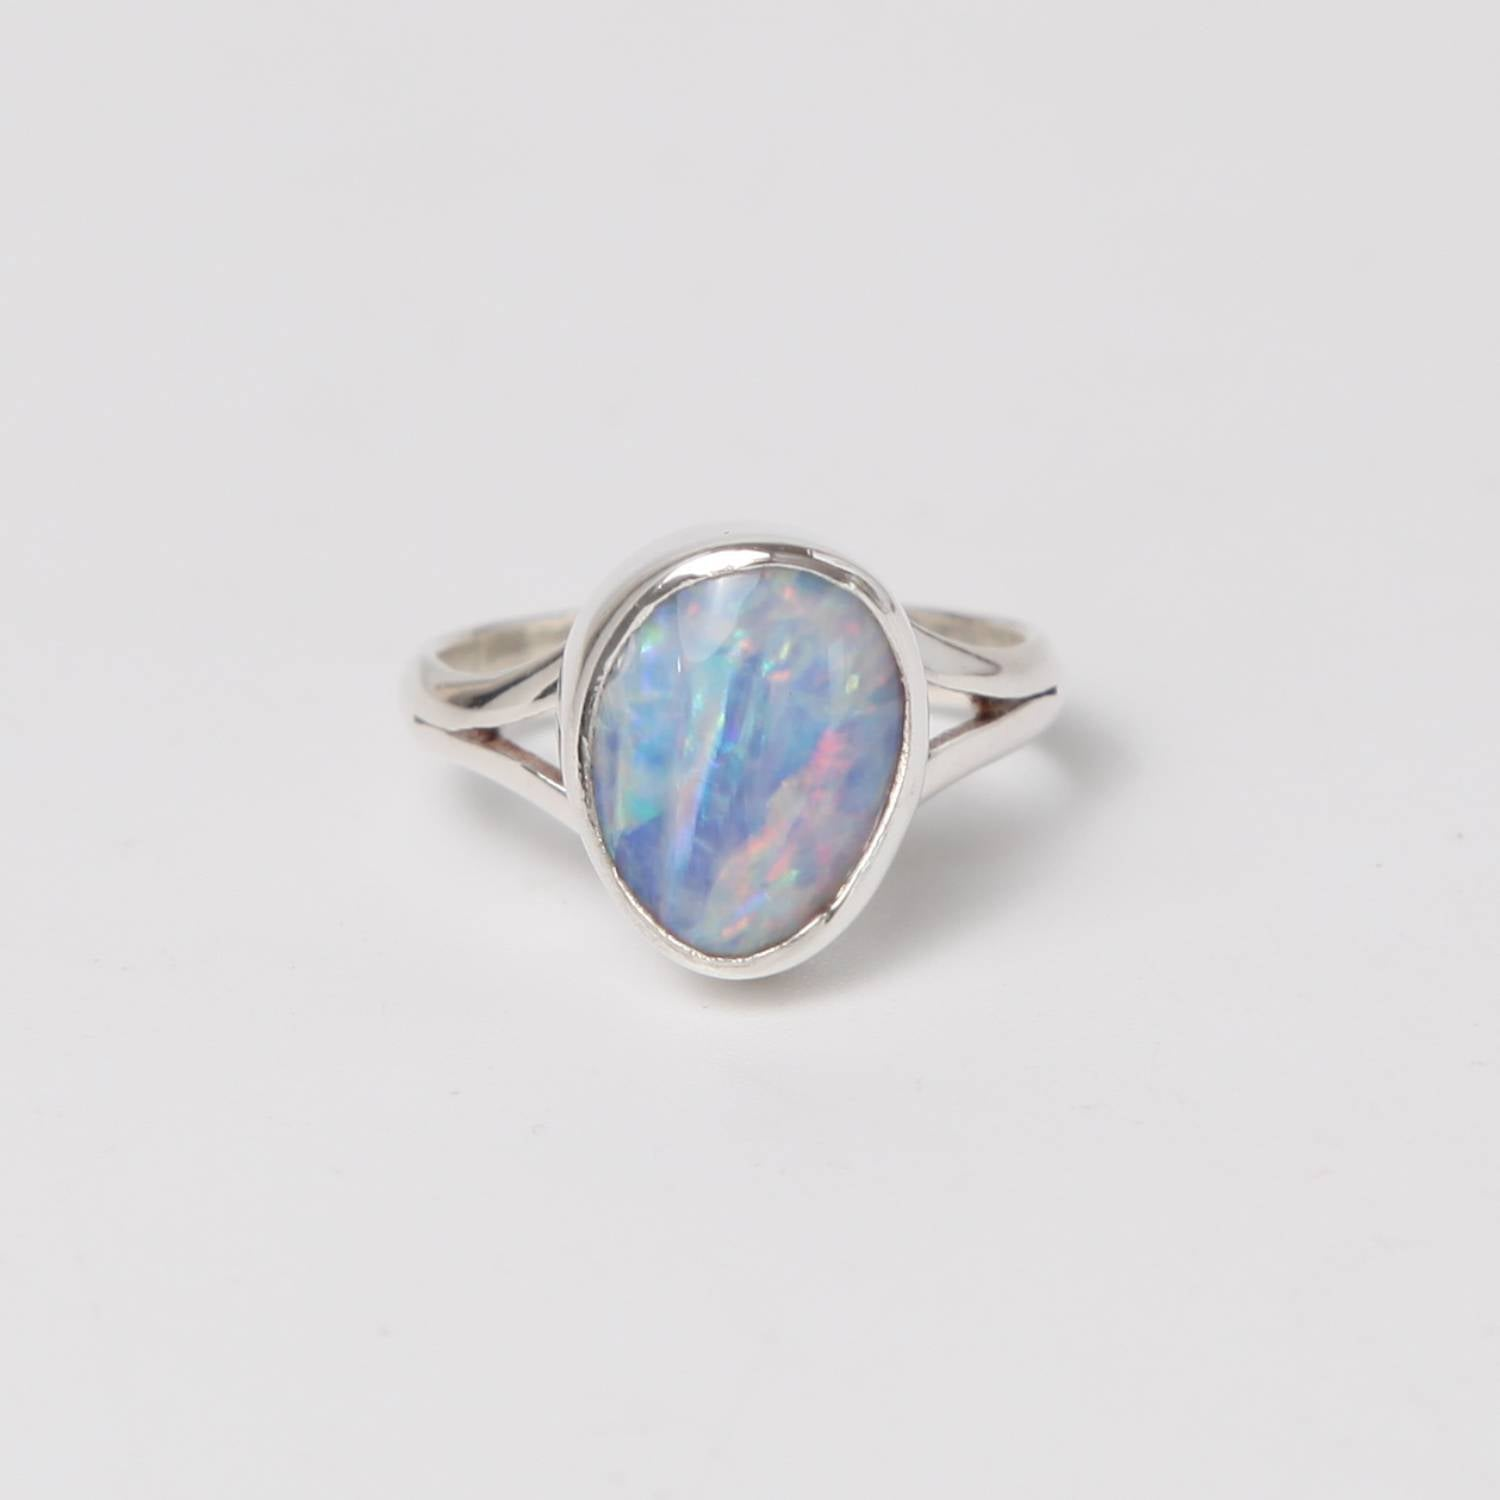 Sterling Silver Ring with Australian Opal